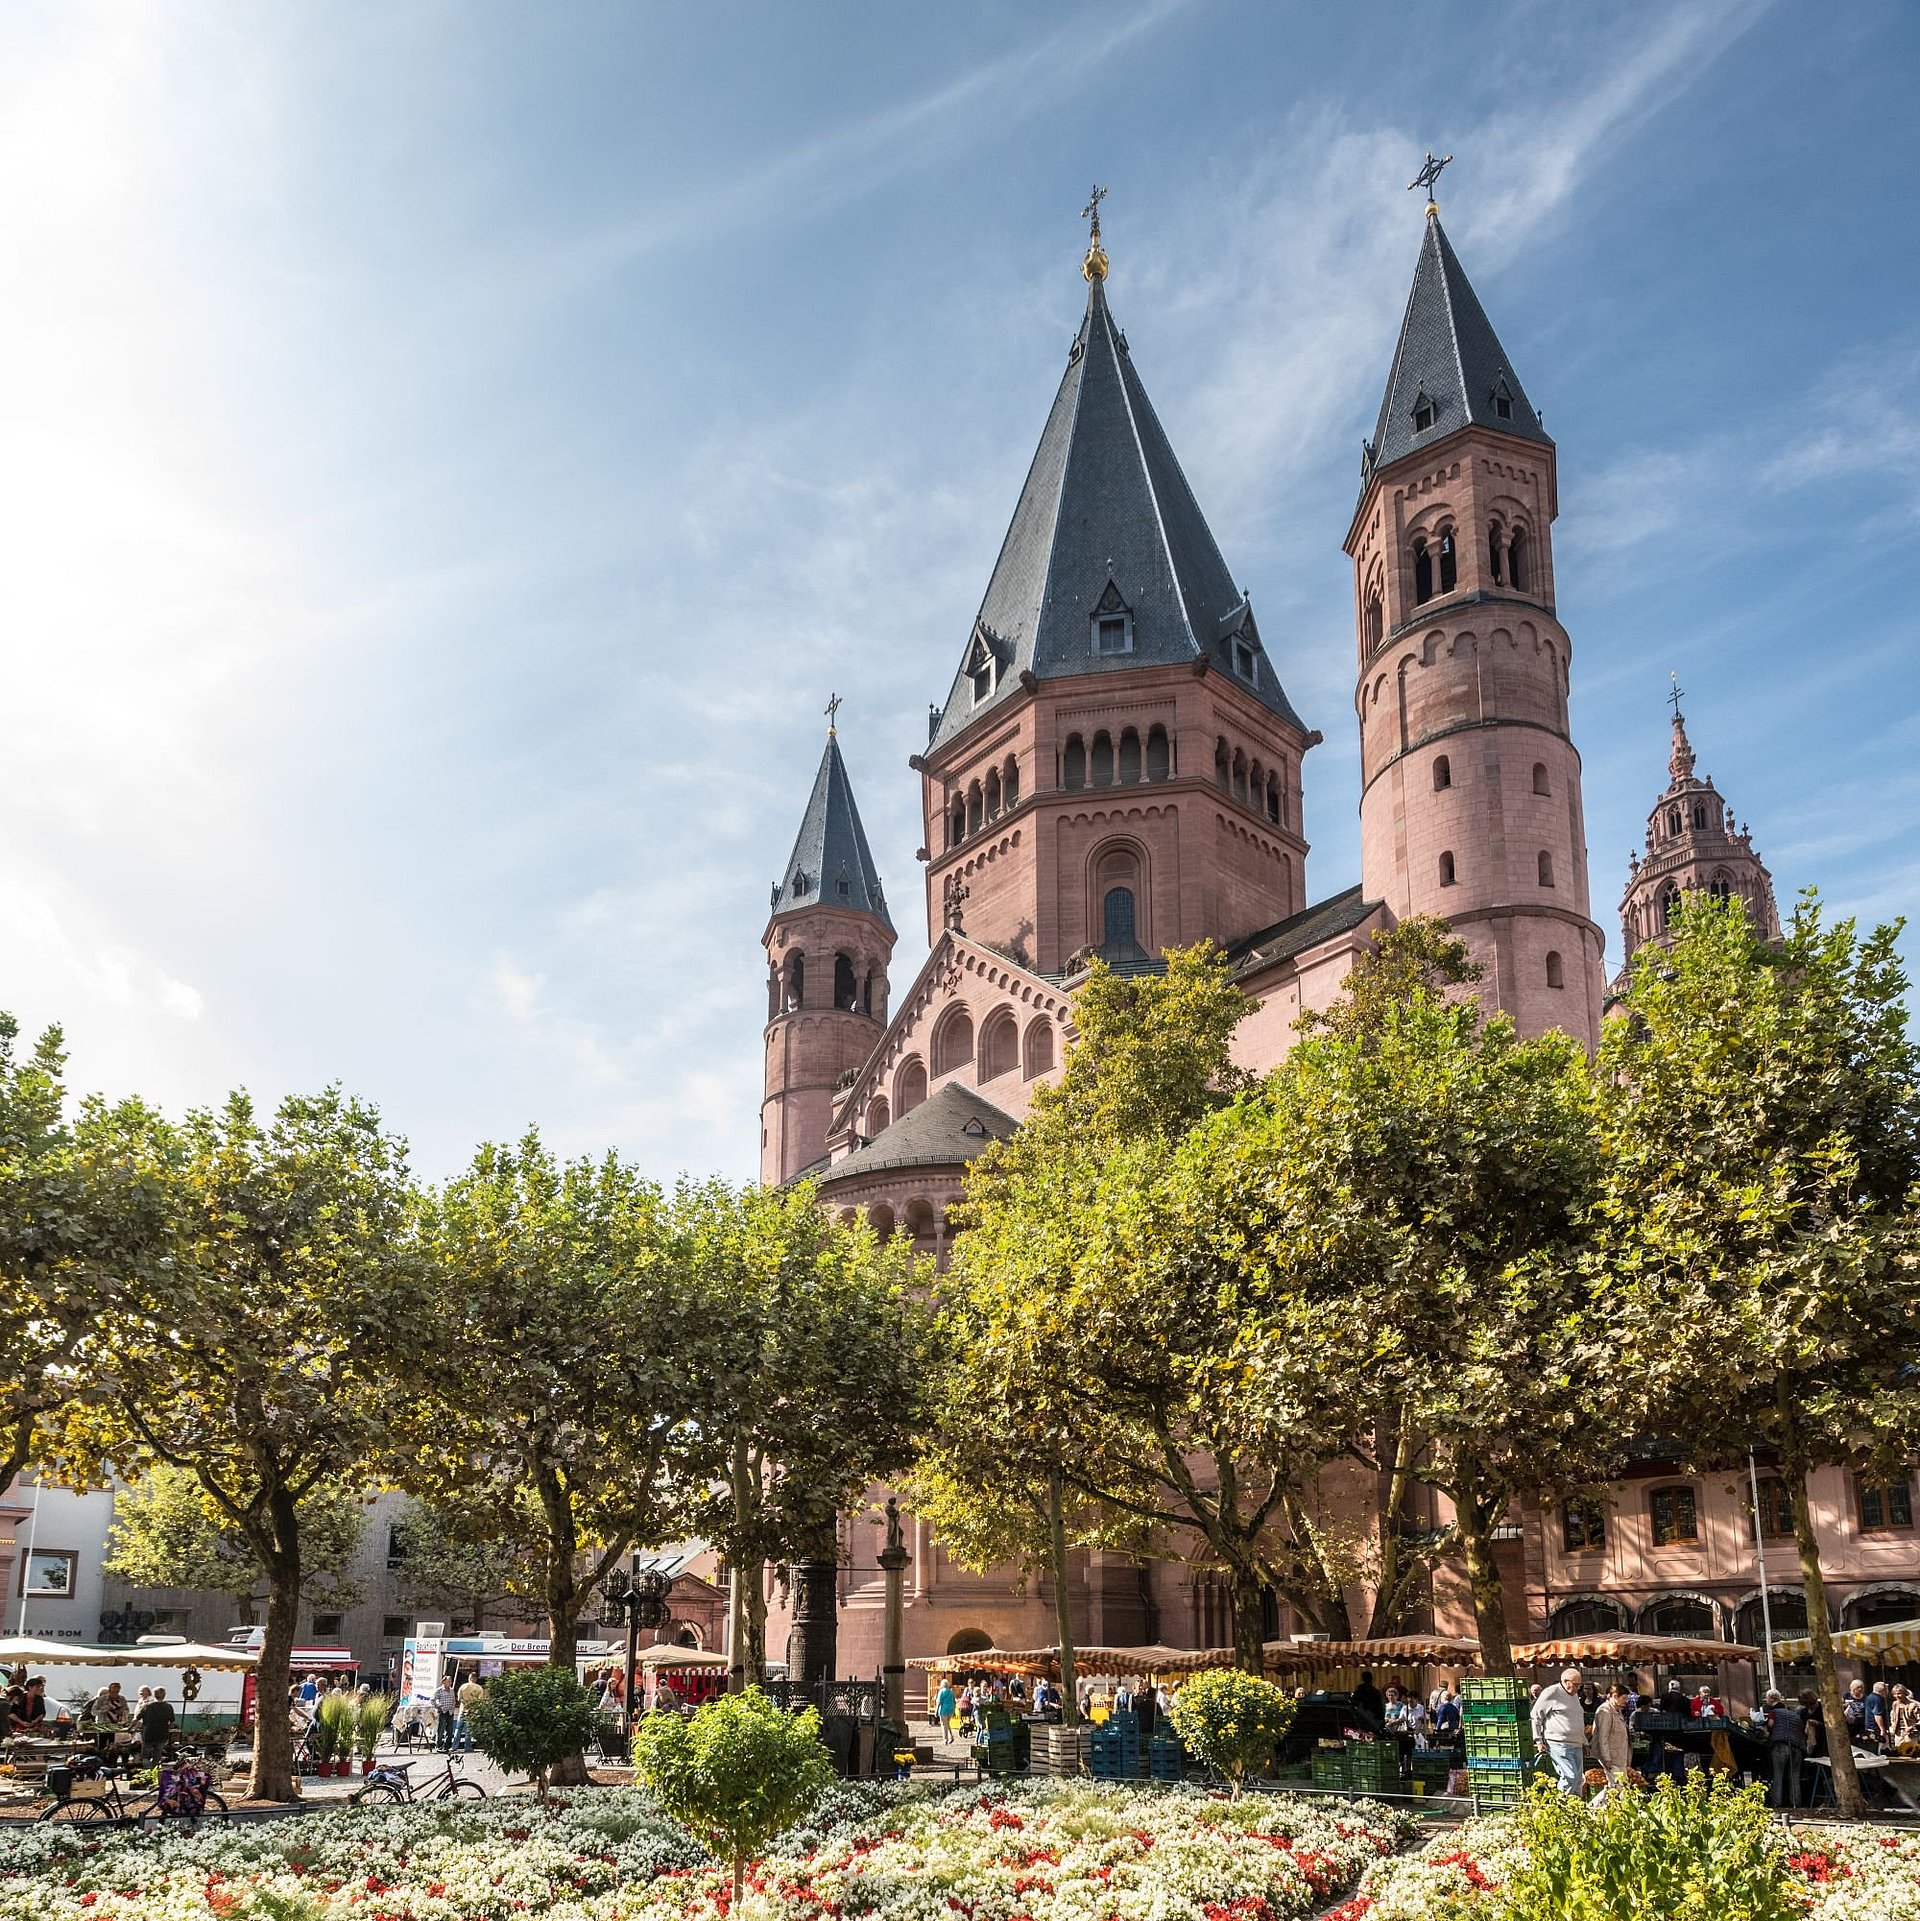 The St Martin's Cathedral in Mainz, Rhine-Hesse